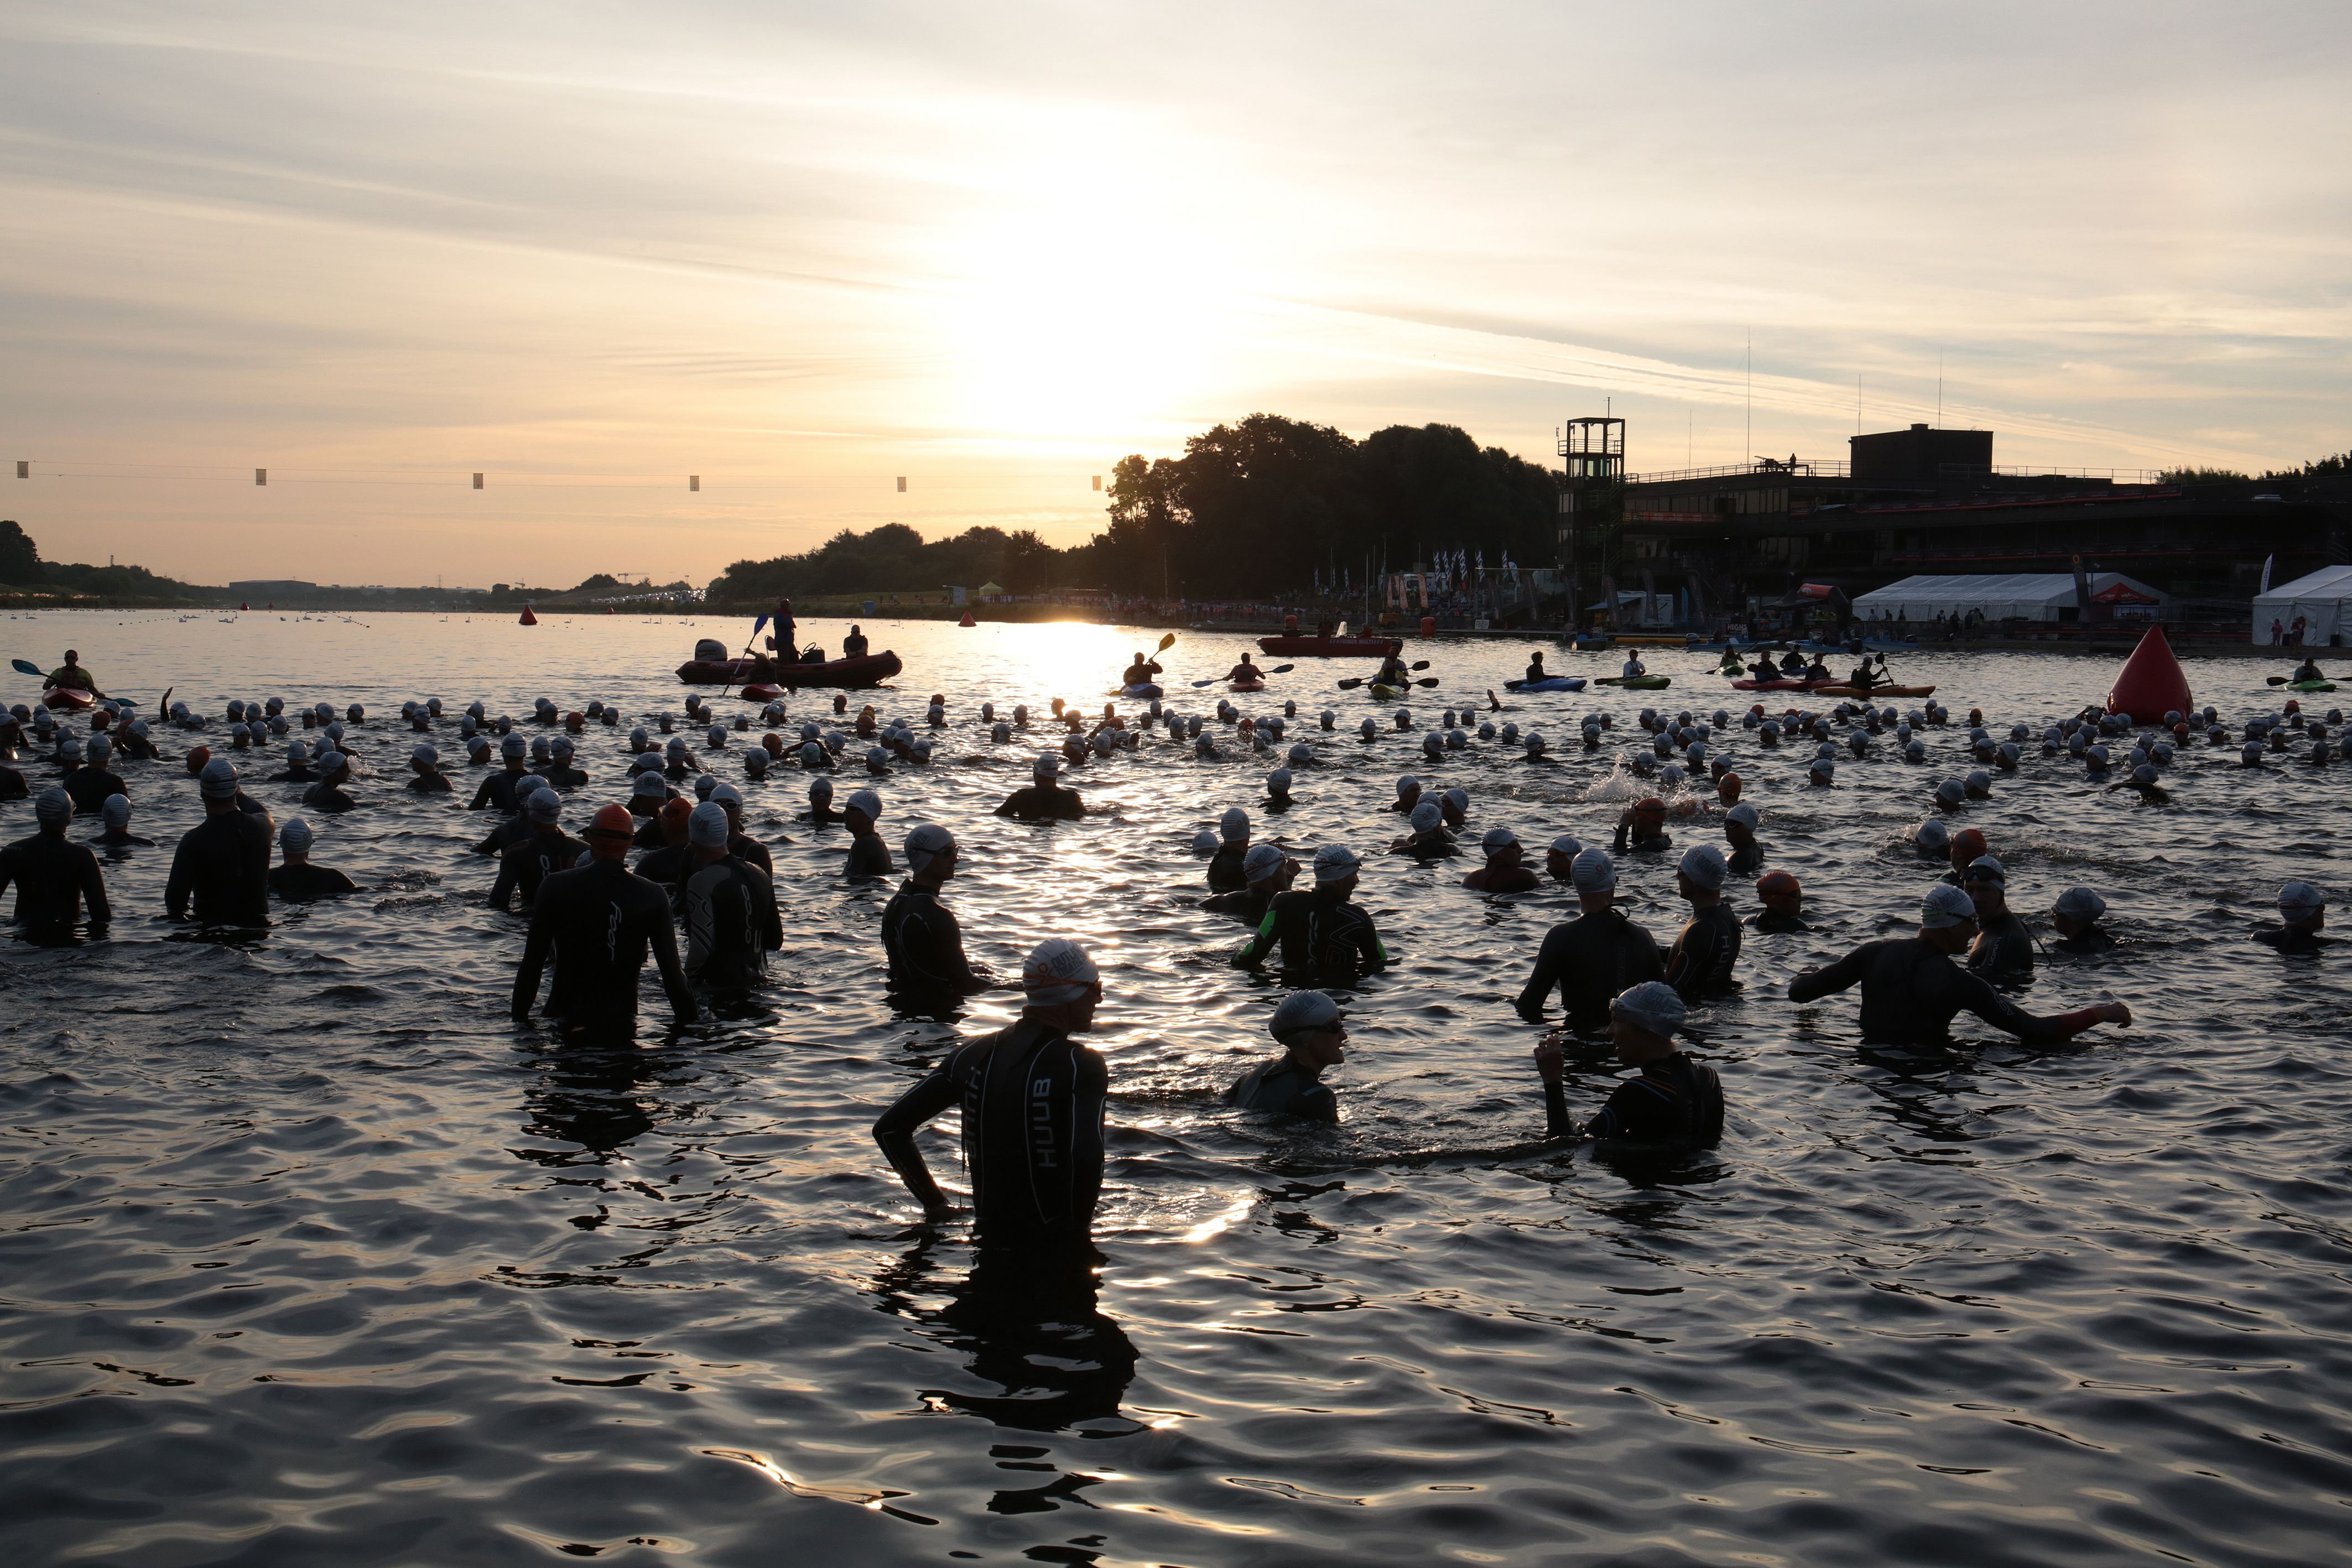 Top tips for preparing for an IRONMAN (last 4-6 weeks)